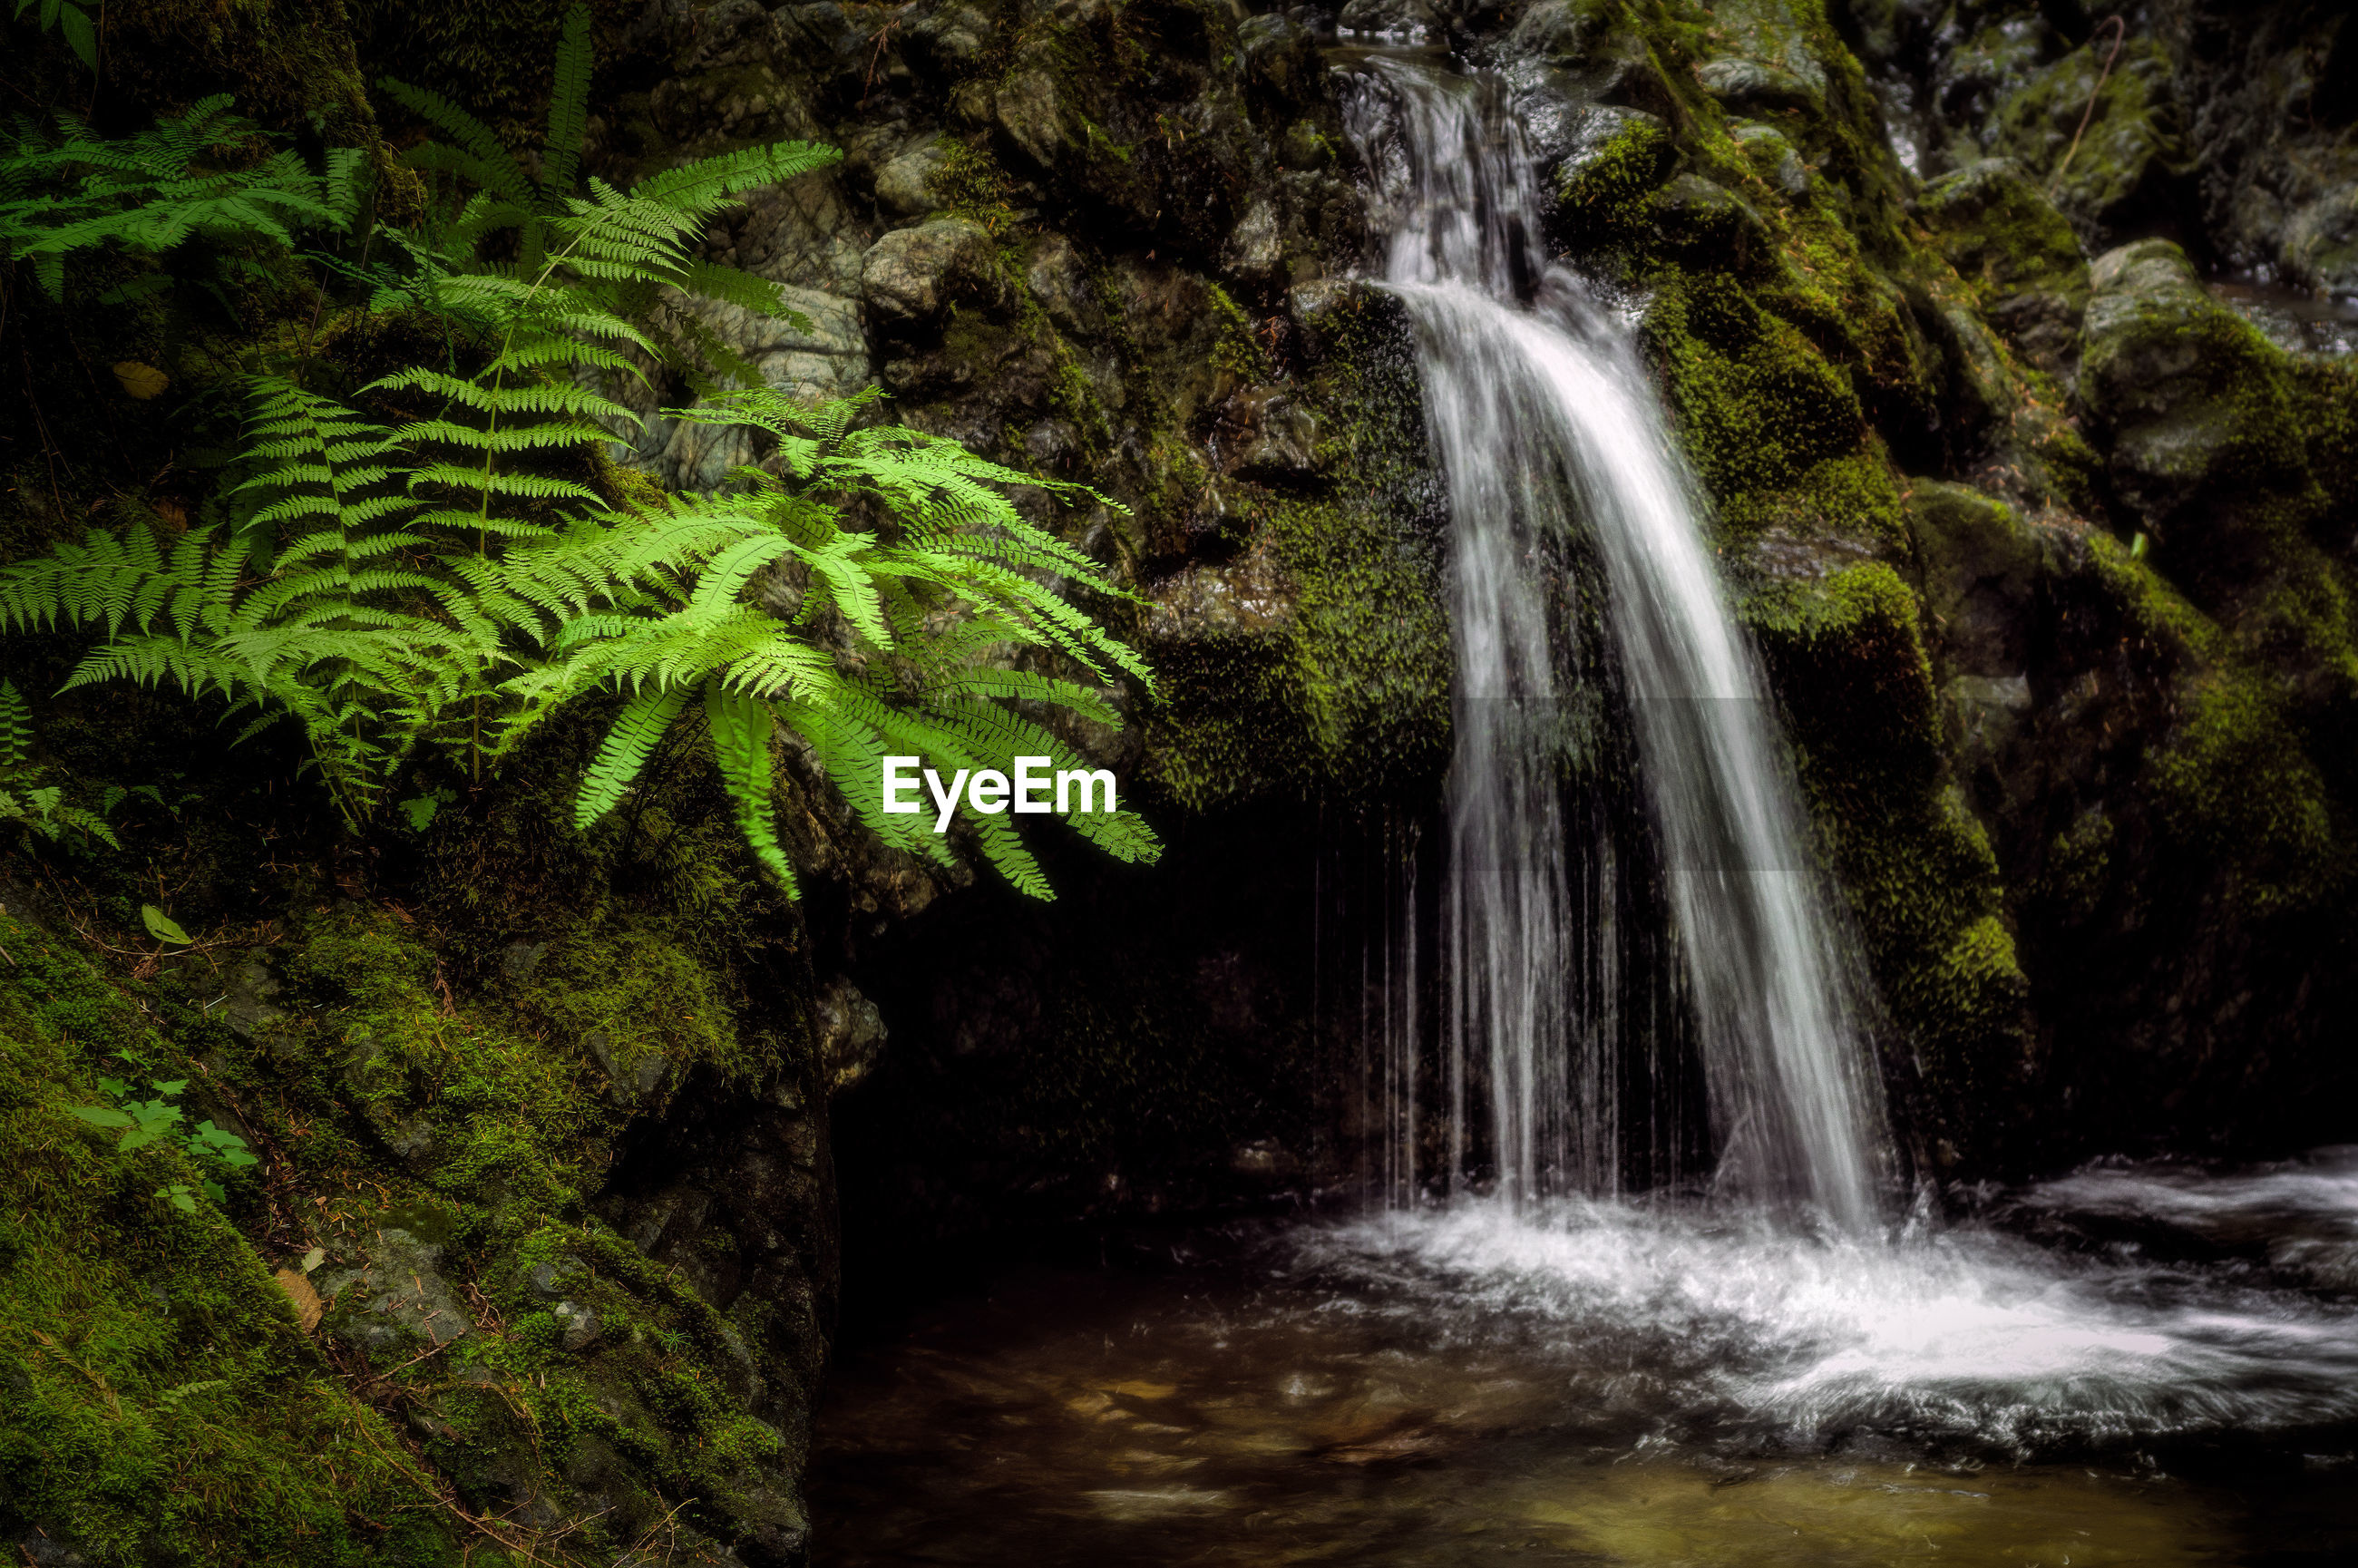 SCENIC VIEW OF WATERFALL IN FOREST AT NIGHT